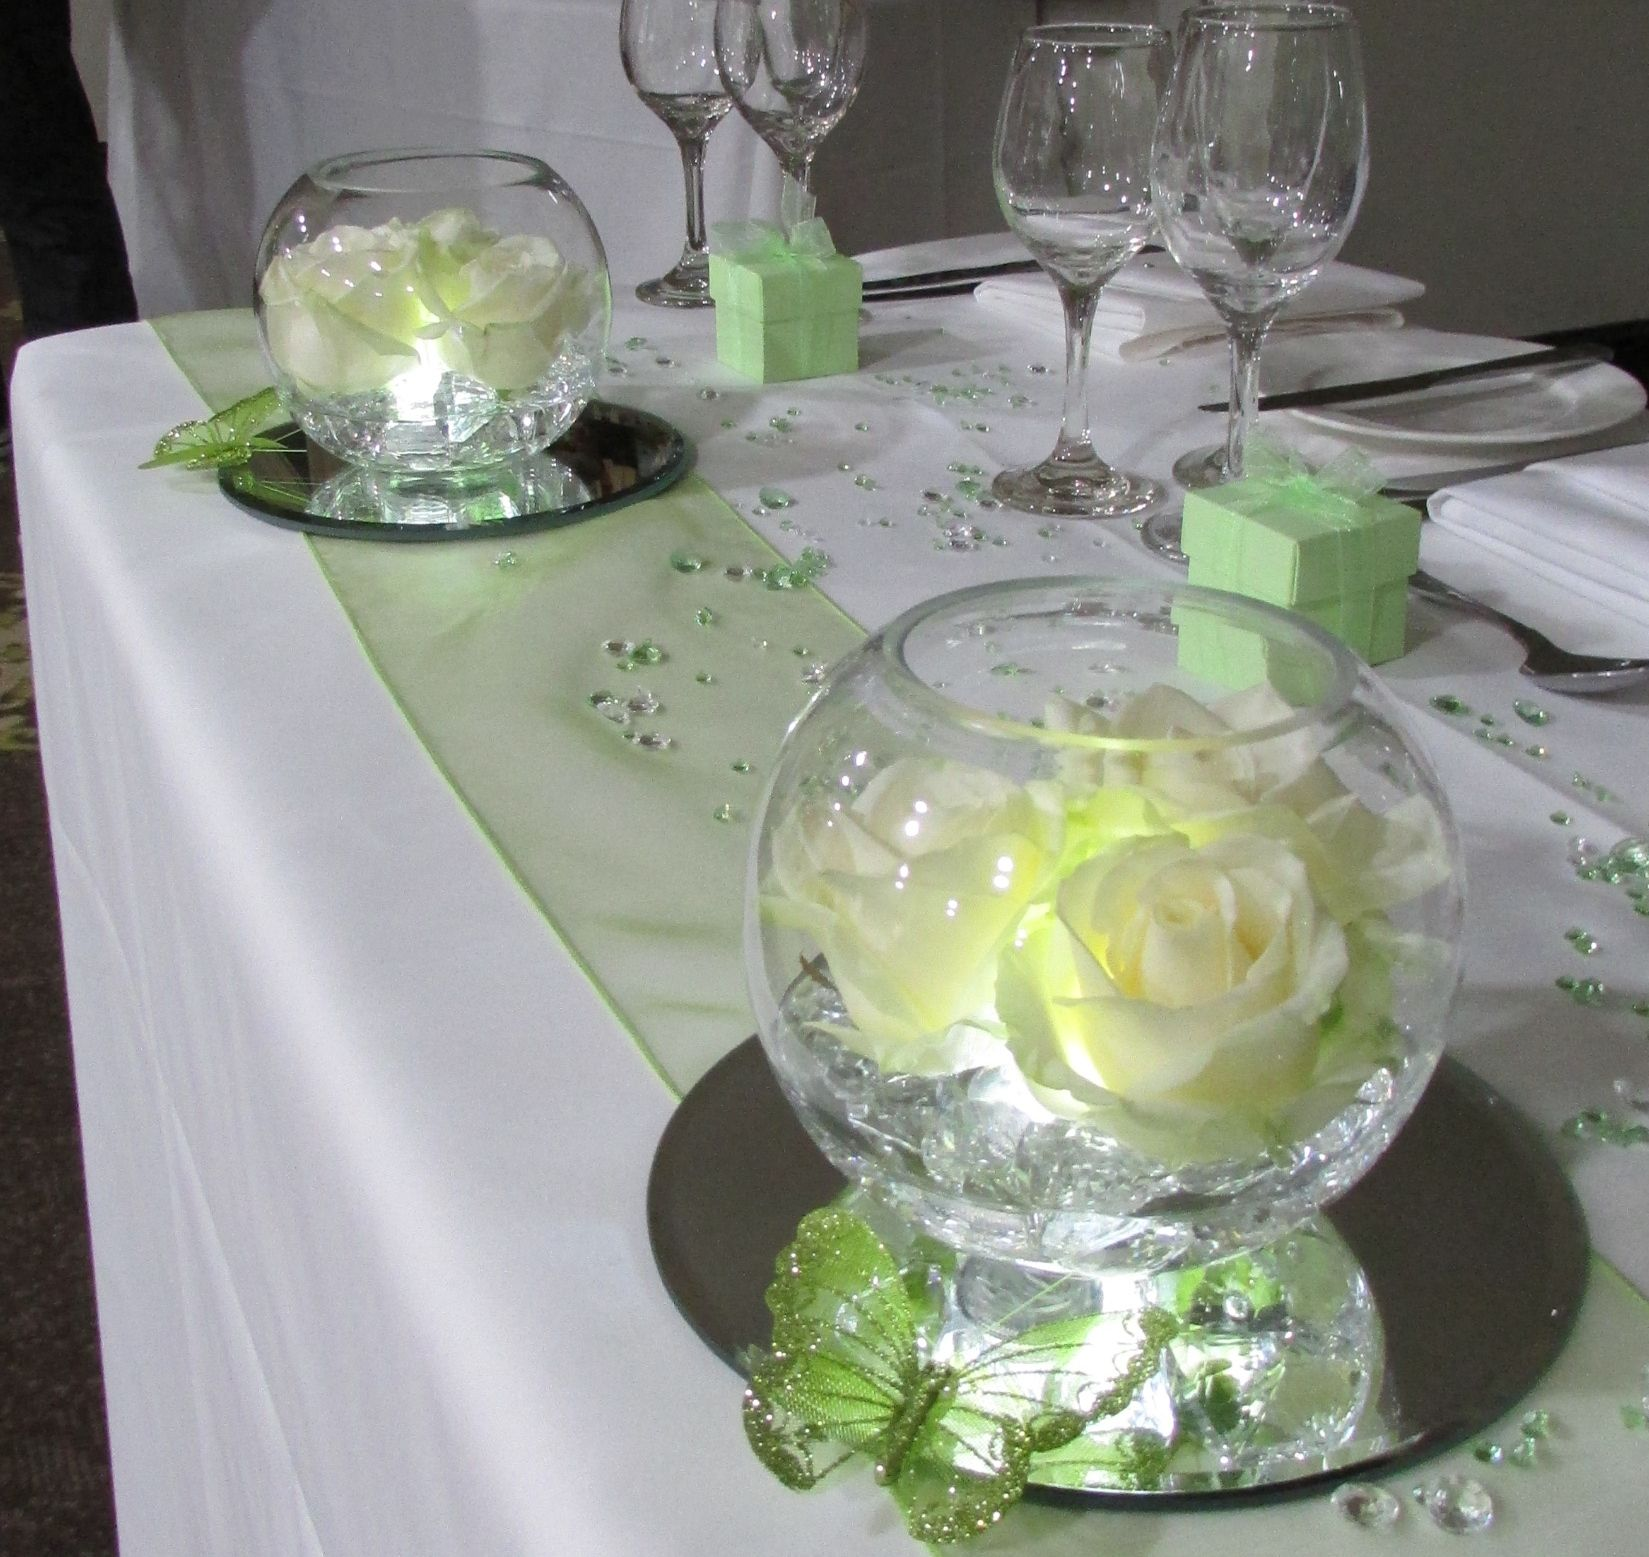 Silver Wedding Decorations For Tables With Images Vintage Table Decorations Wedding Table Decorations Vintage Country Wedding Table Decoration